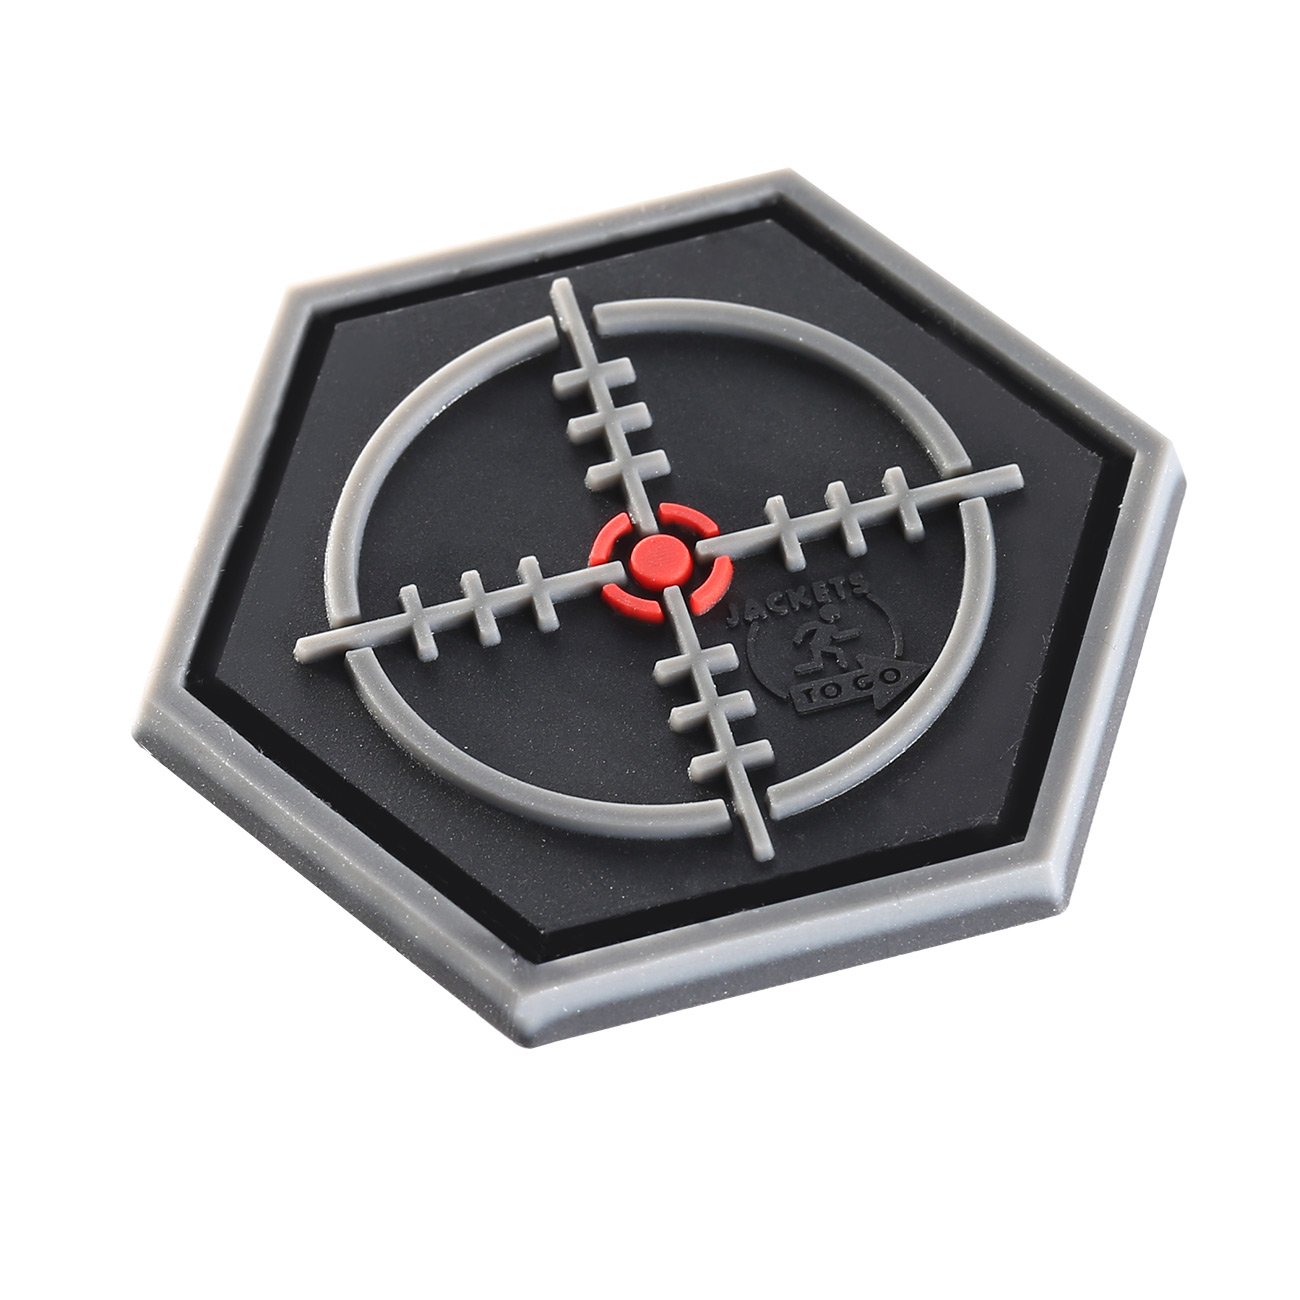 JTG  3D Rubber Patch Sniper Scope Klettfläche 1